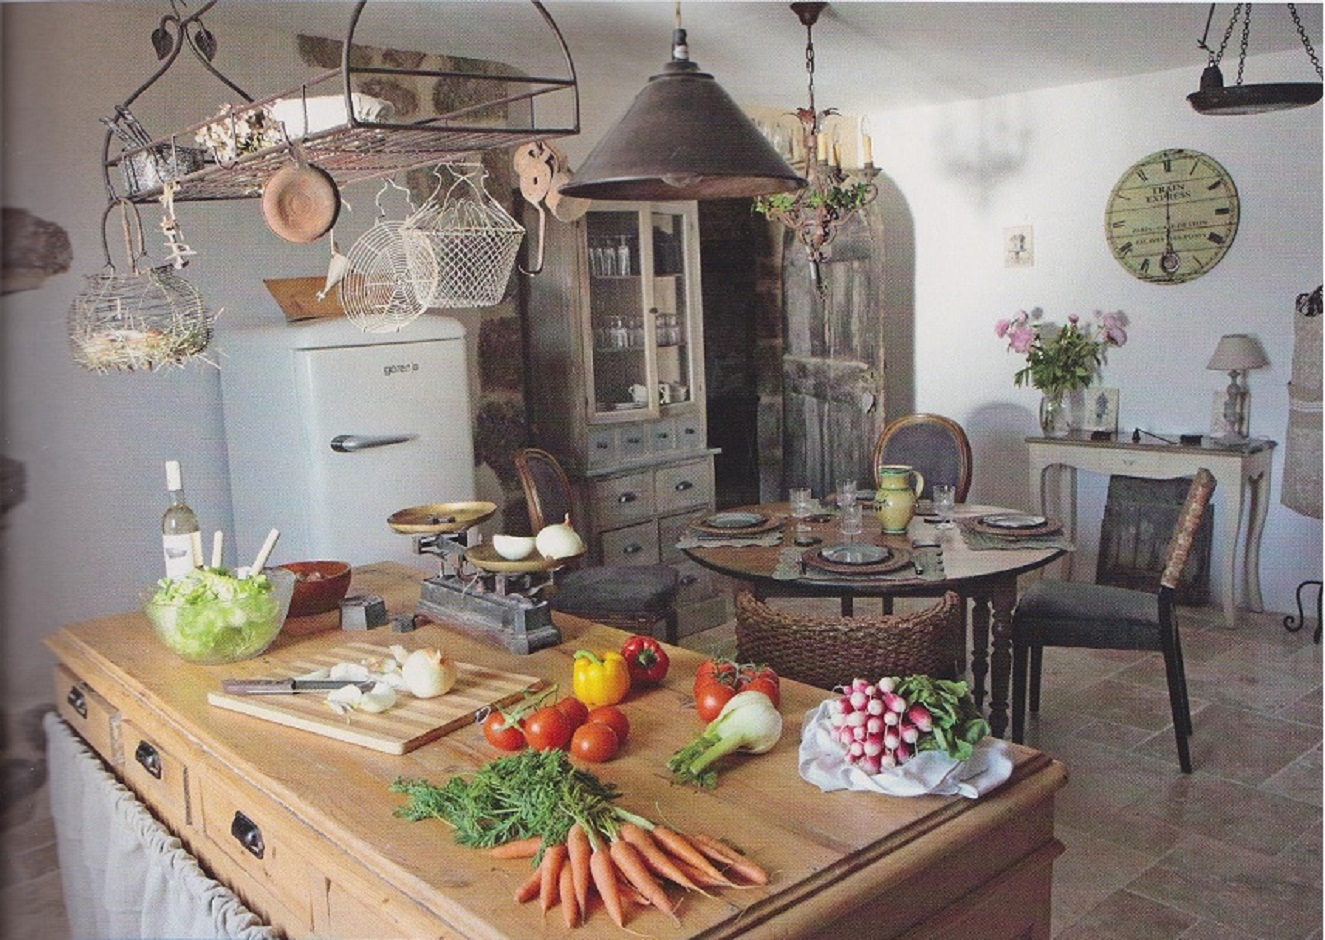 Design France Vote For Your Favorite French Kitchen Design Design